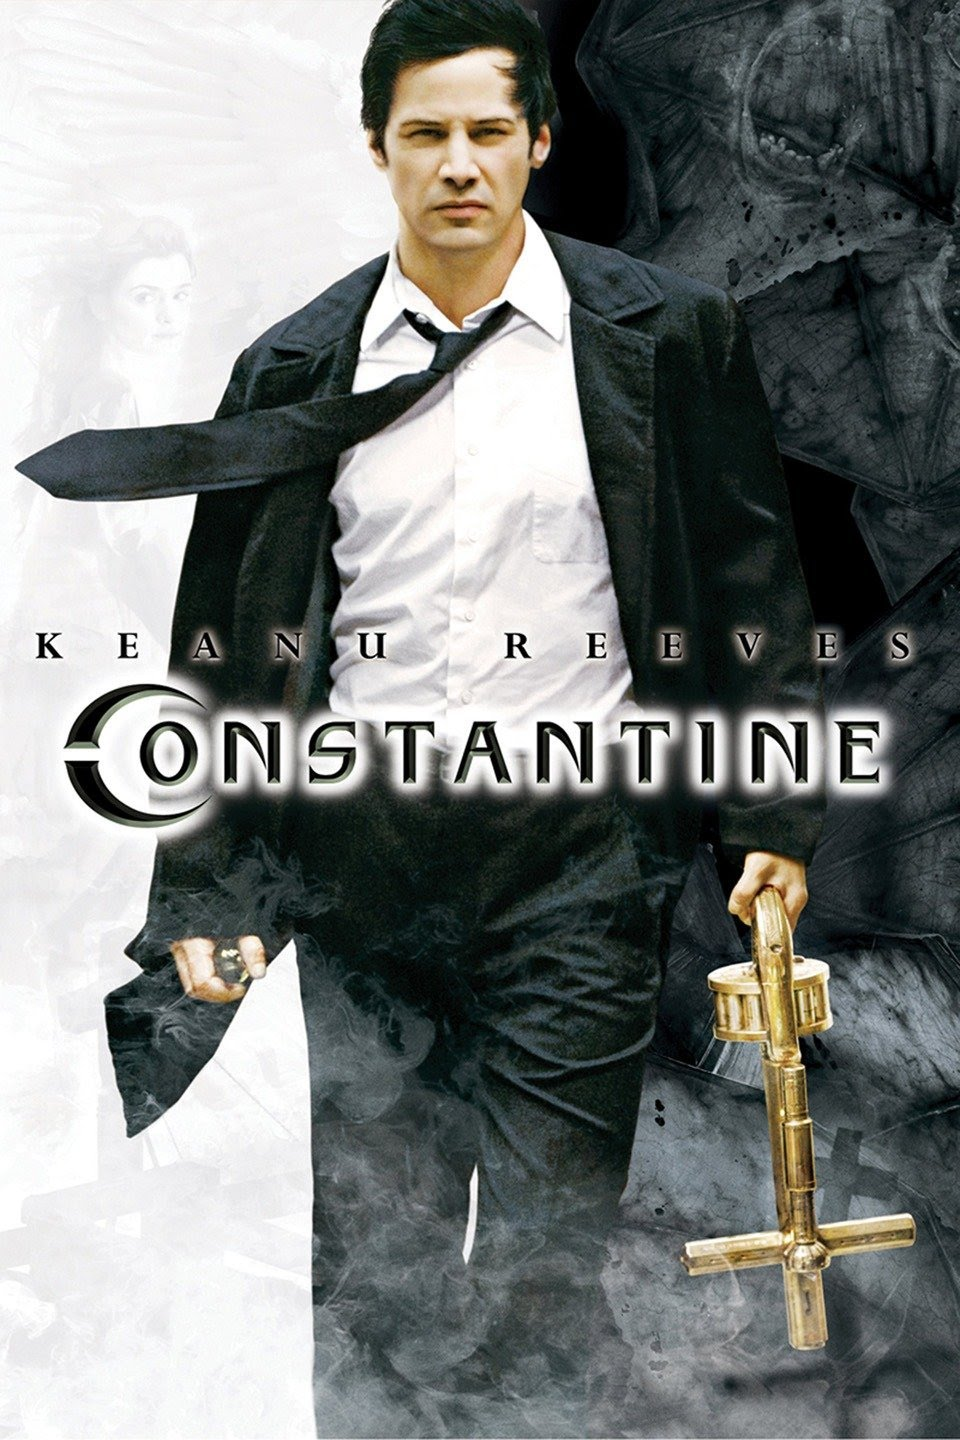 Download Constantine (2005) Dual Audio Hindi 480p [450MB] | 720p [1.4GB] | 1080p [2.7GB]